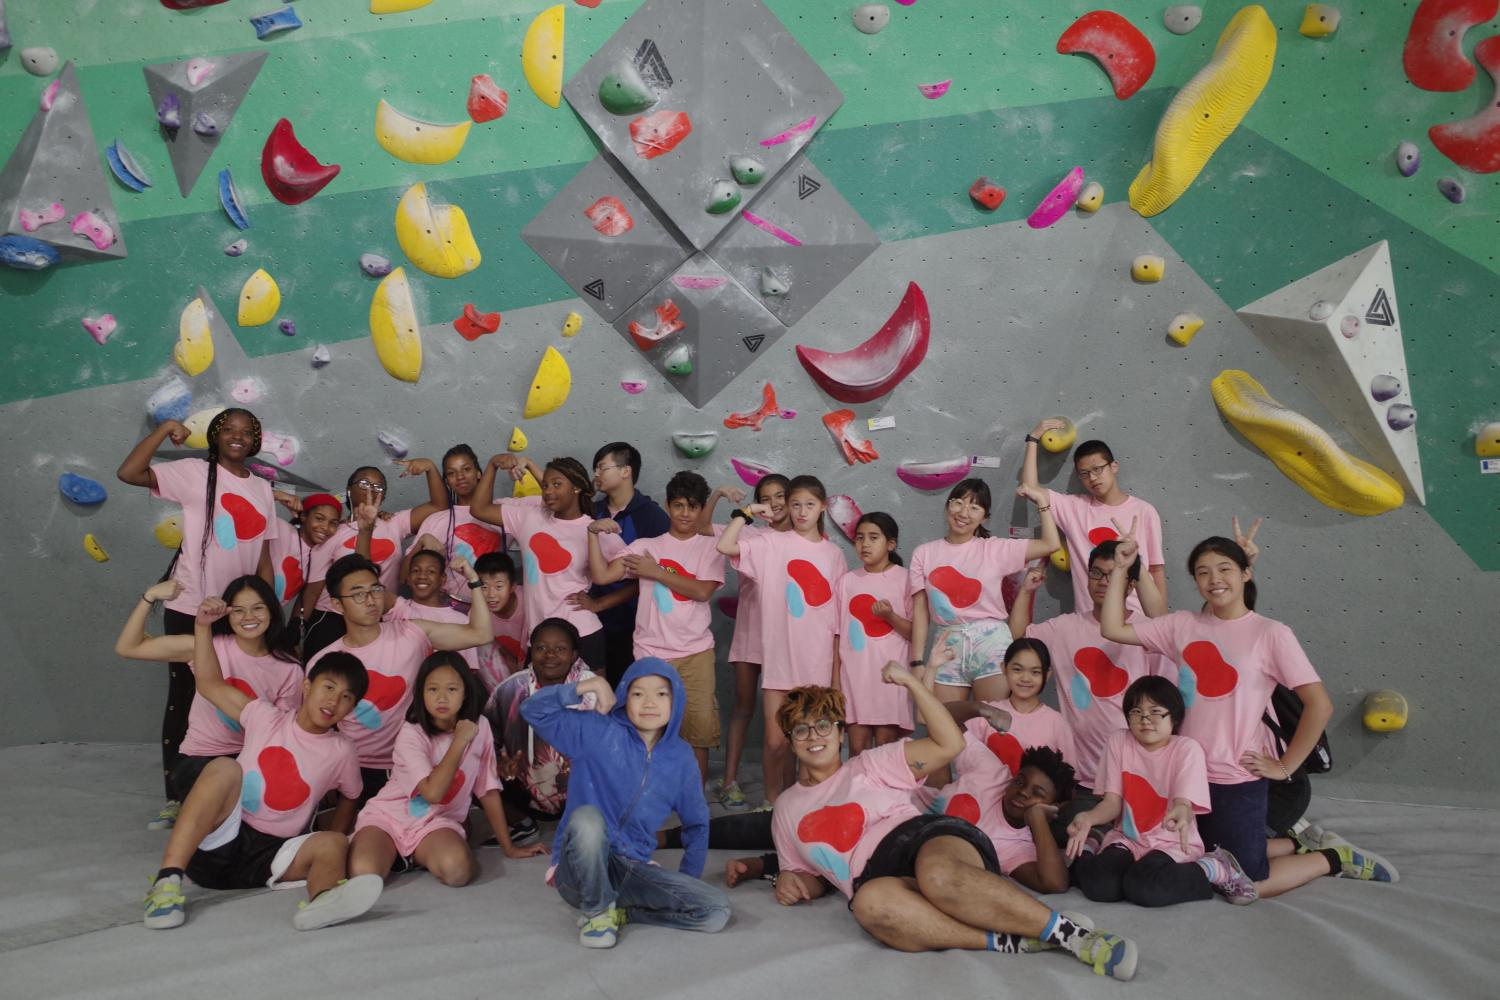 YAW Summer Program takes a group photo in front of a rock climbing wall, smiling with biceps flexed!